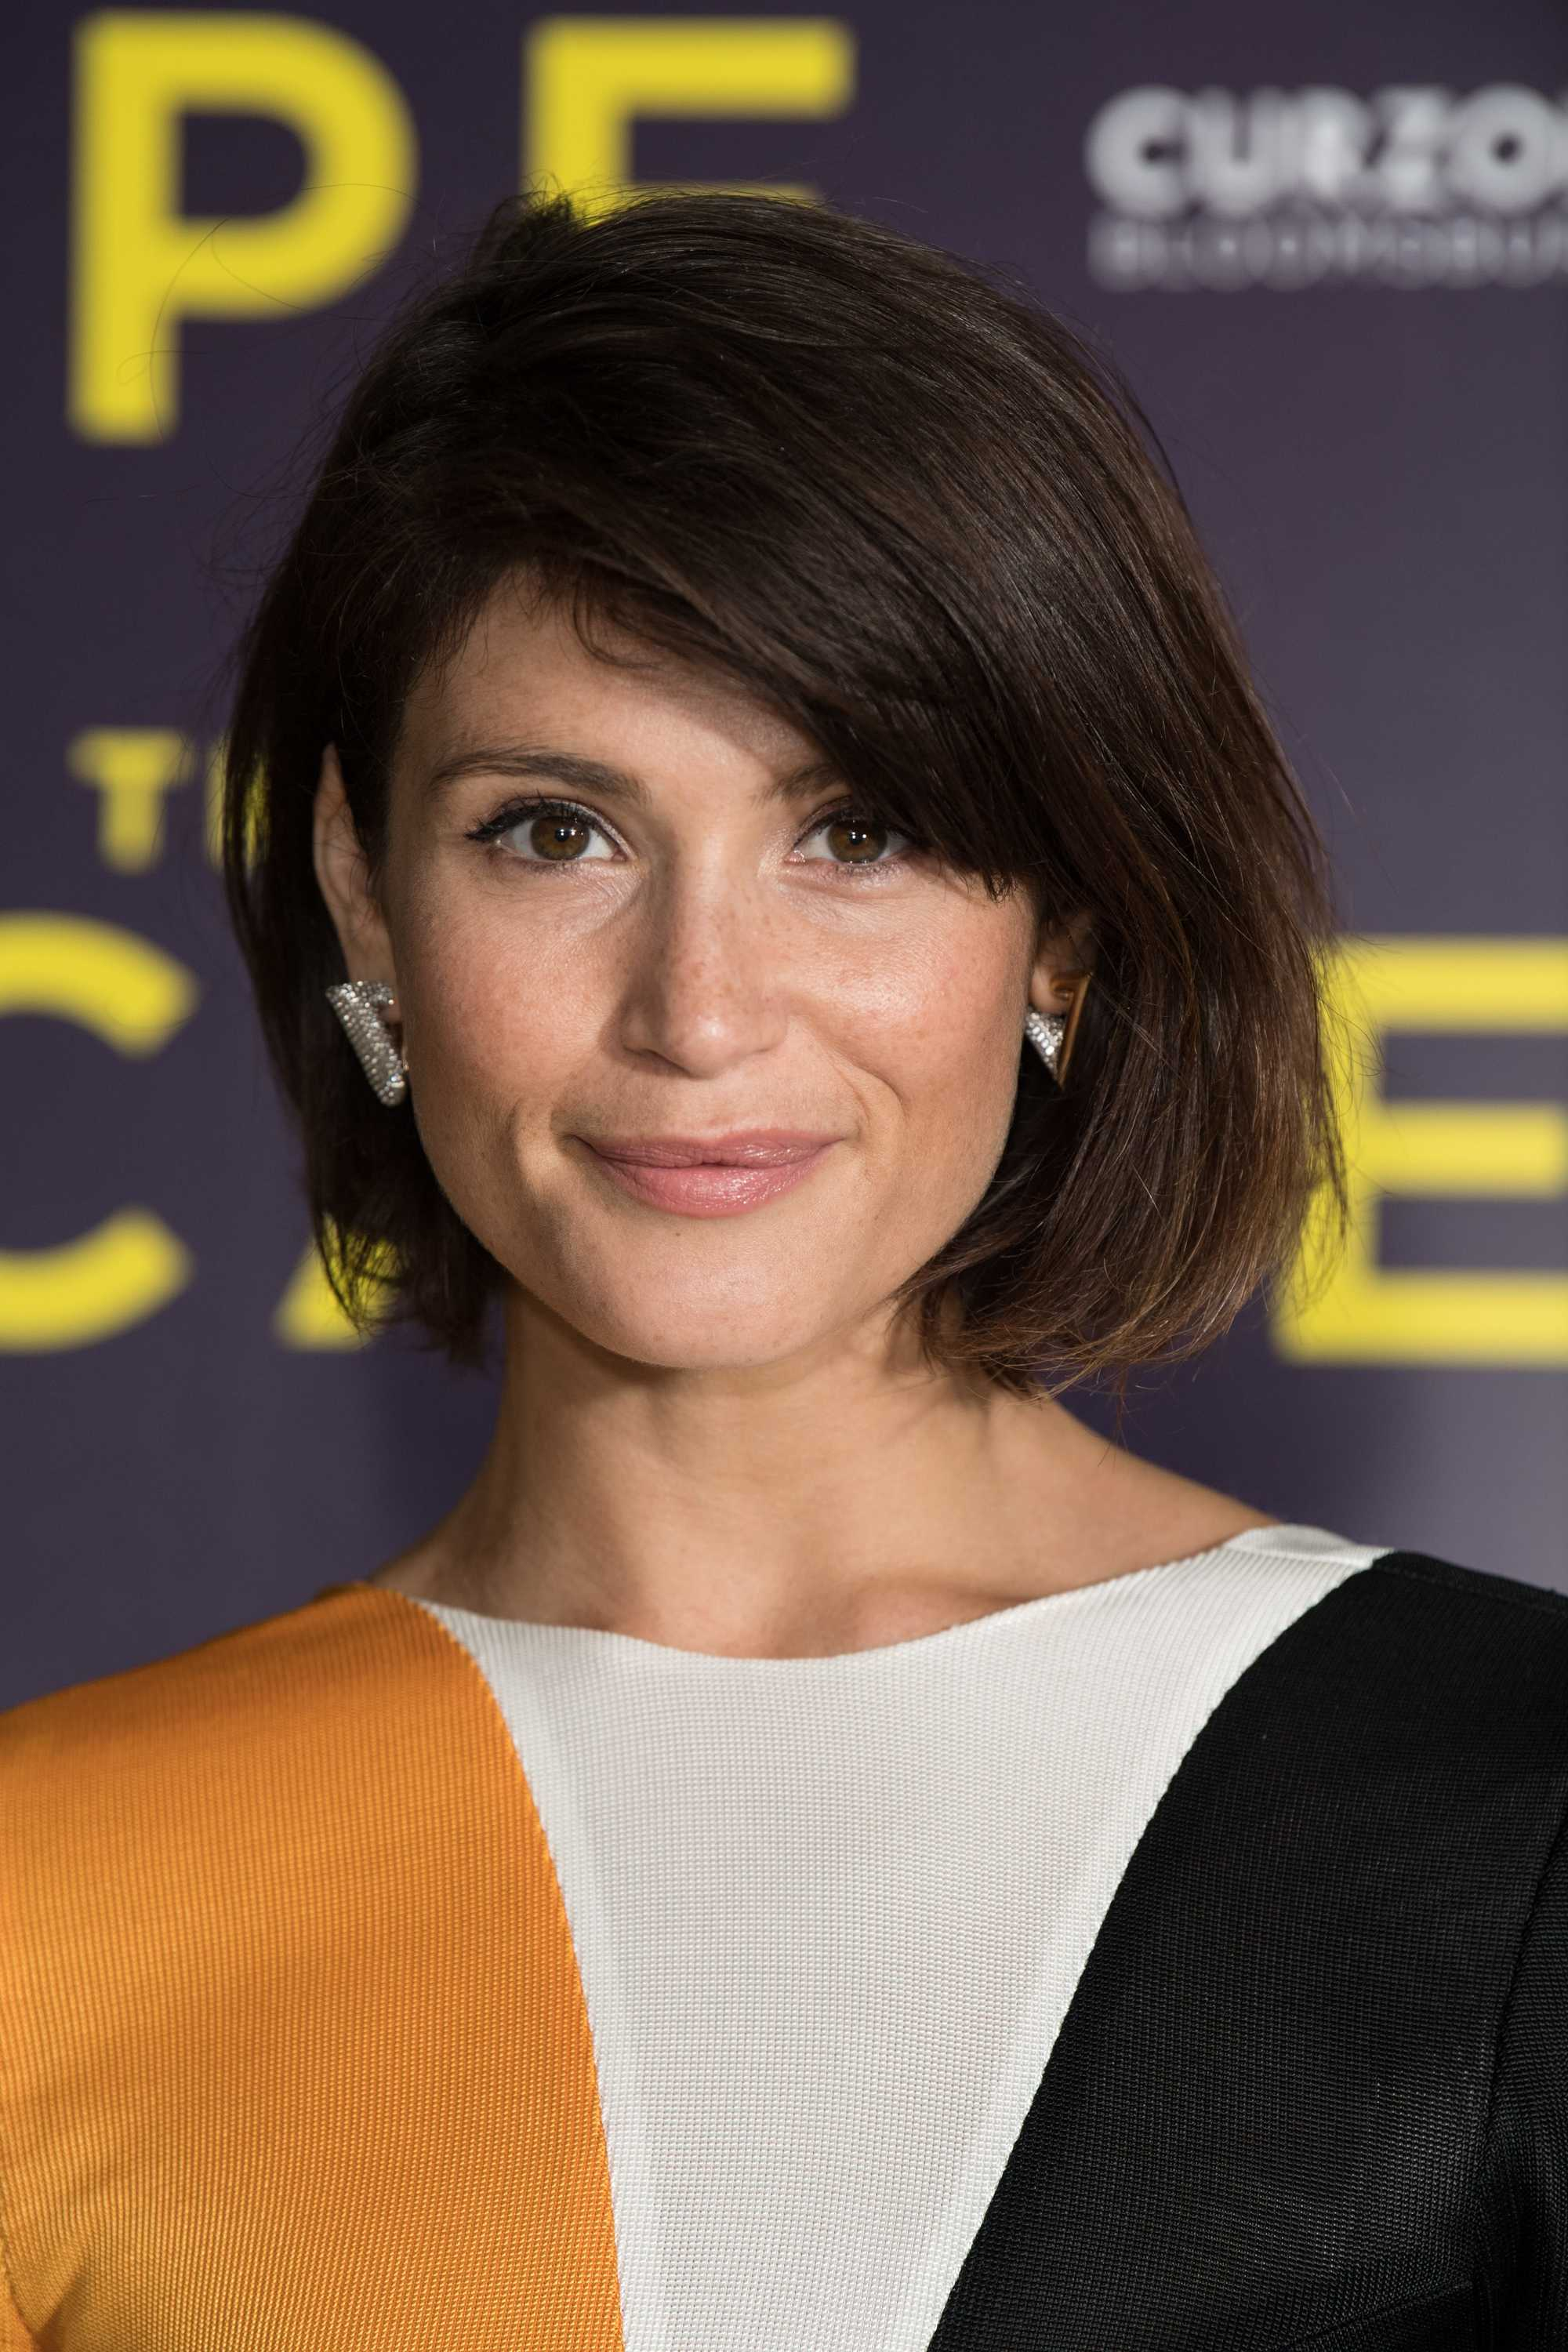 Bob hairstyles for fine hair: Gemma Arterton on the red carpet with dark brown side-swept graduated bob, wearing printed top